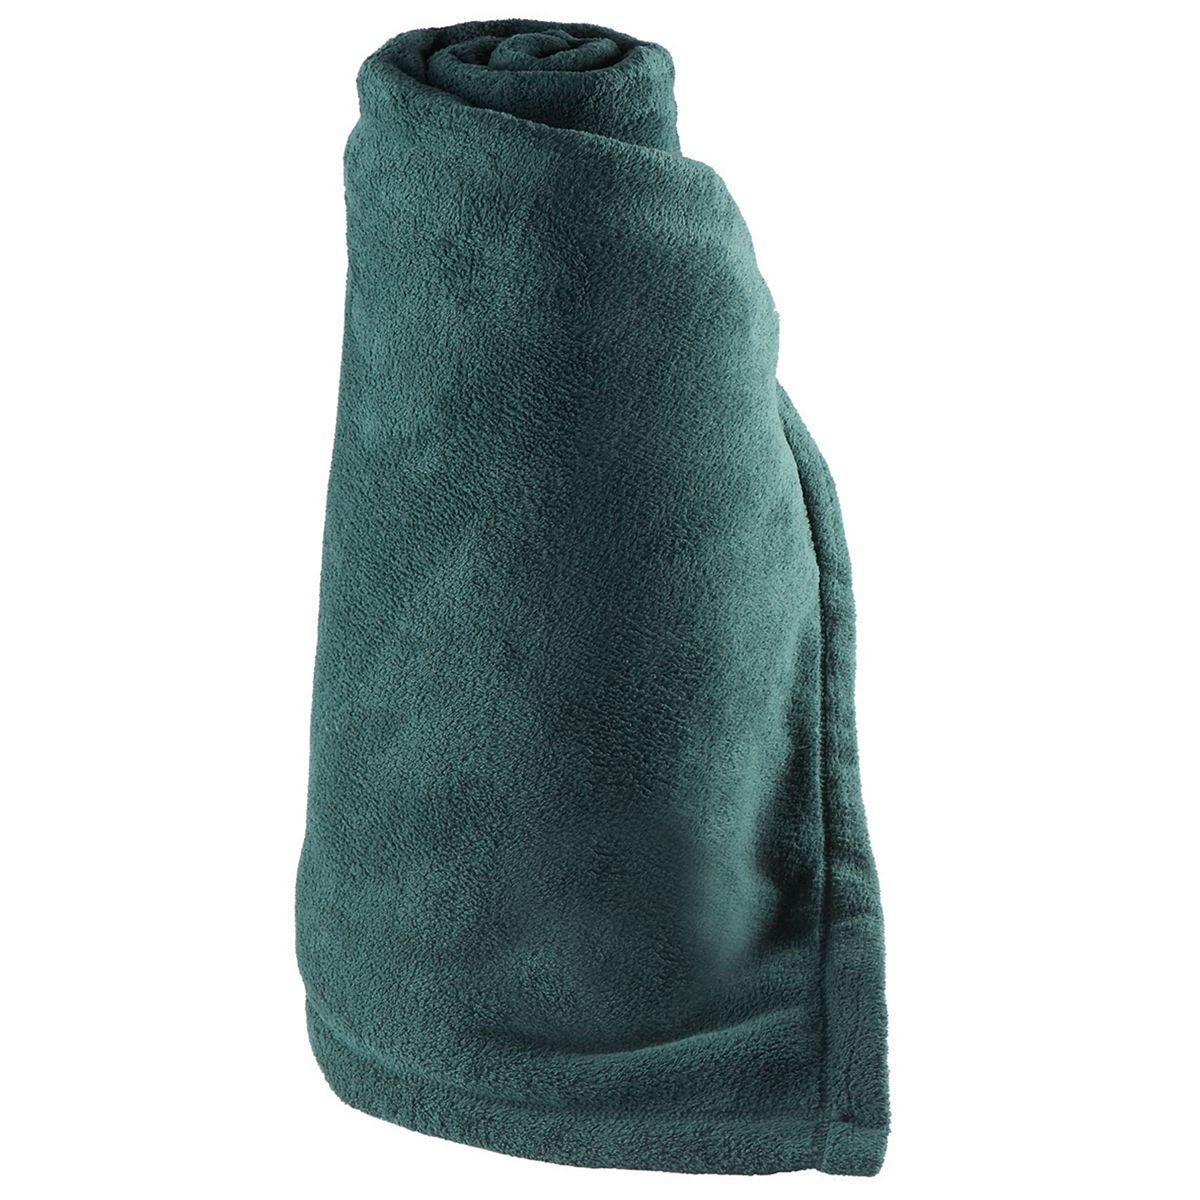 Tailgate Blanket - DARK GREEN